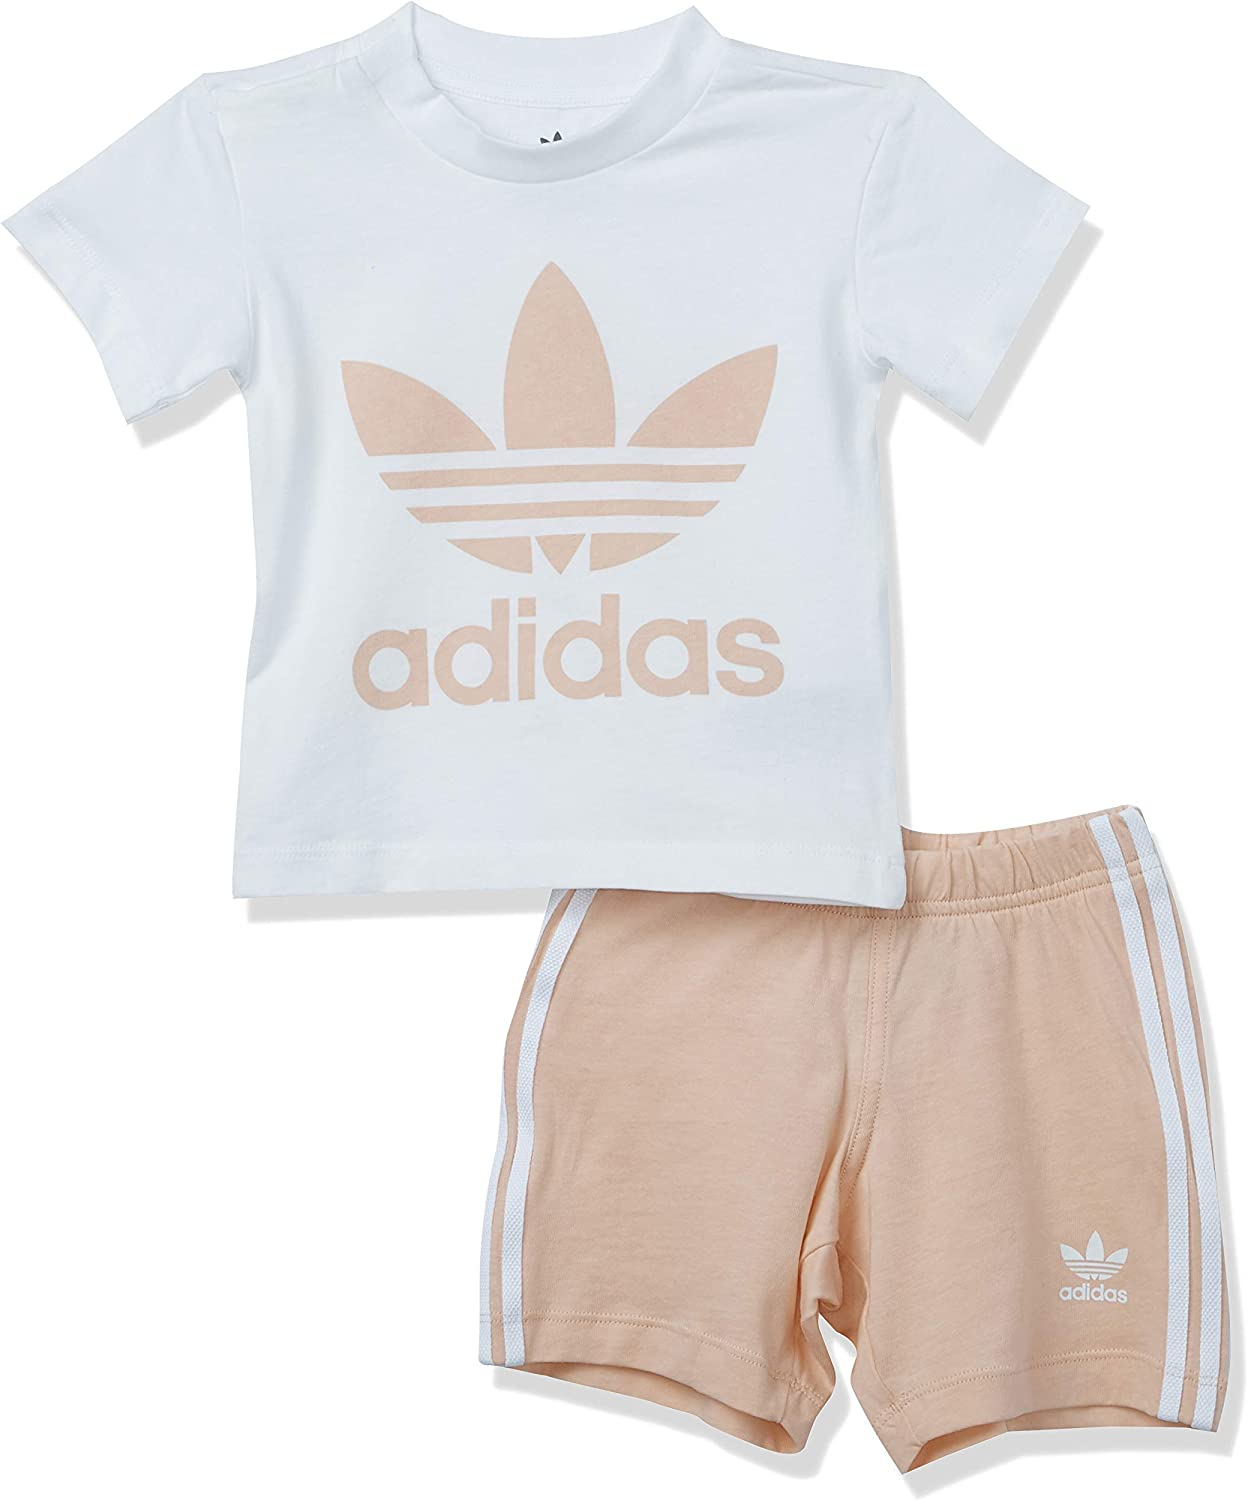 Clearance SALE! Limited time! adidas Originals baby-boys Trefoil Charlotte Mall Shorts Set Tee